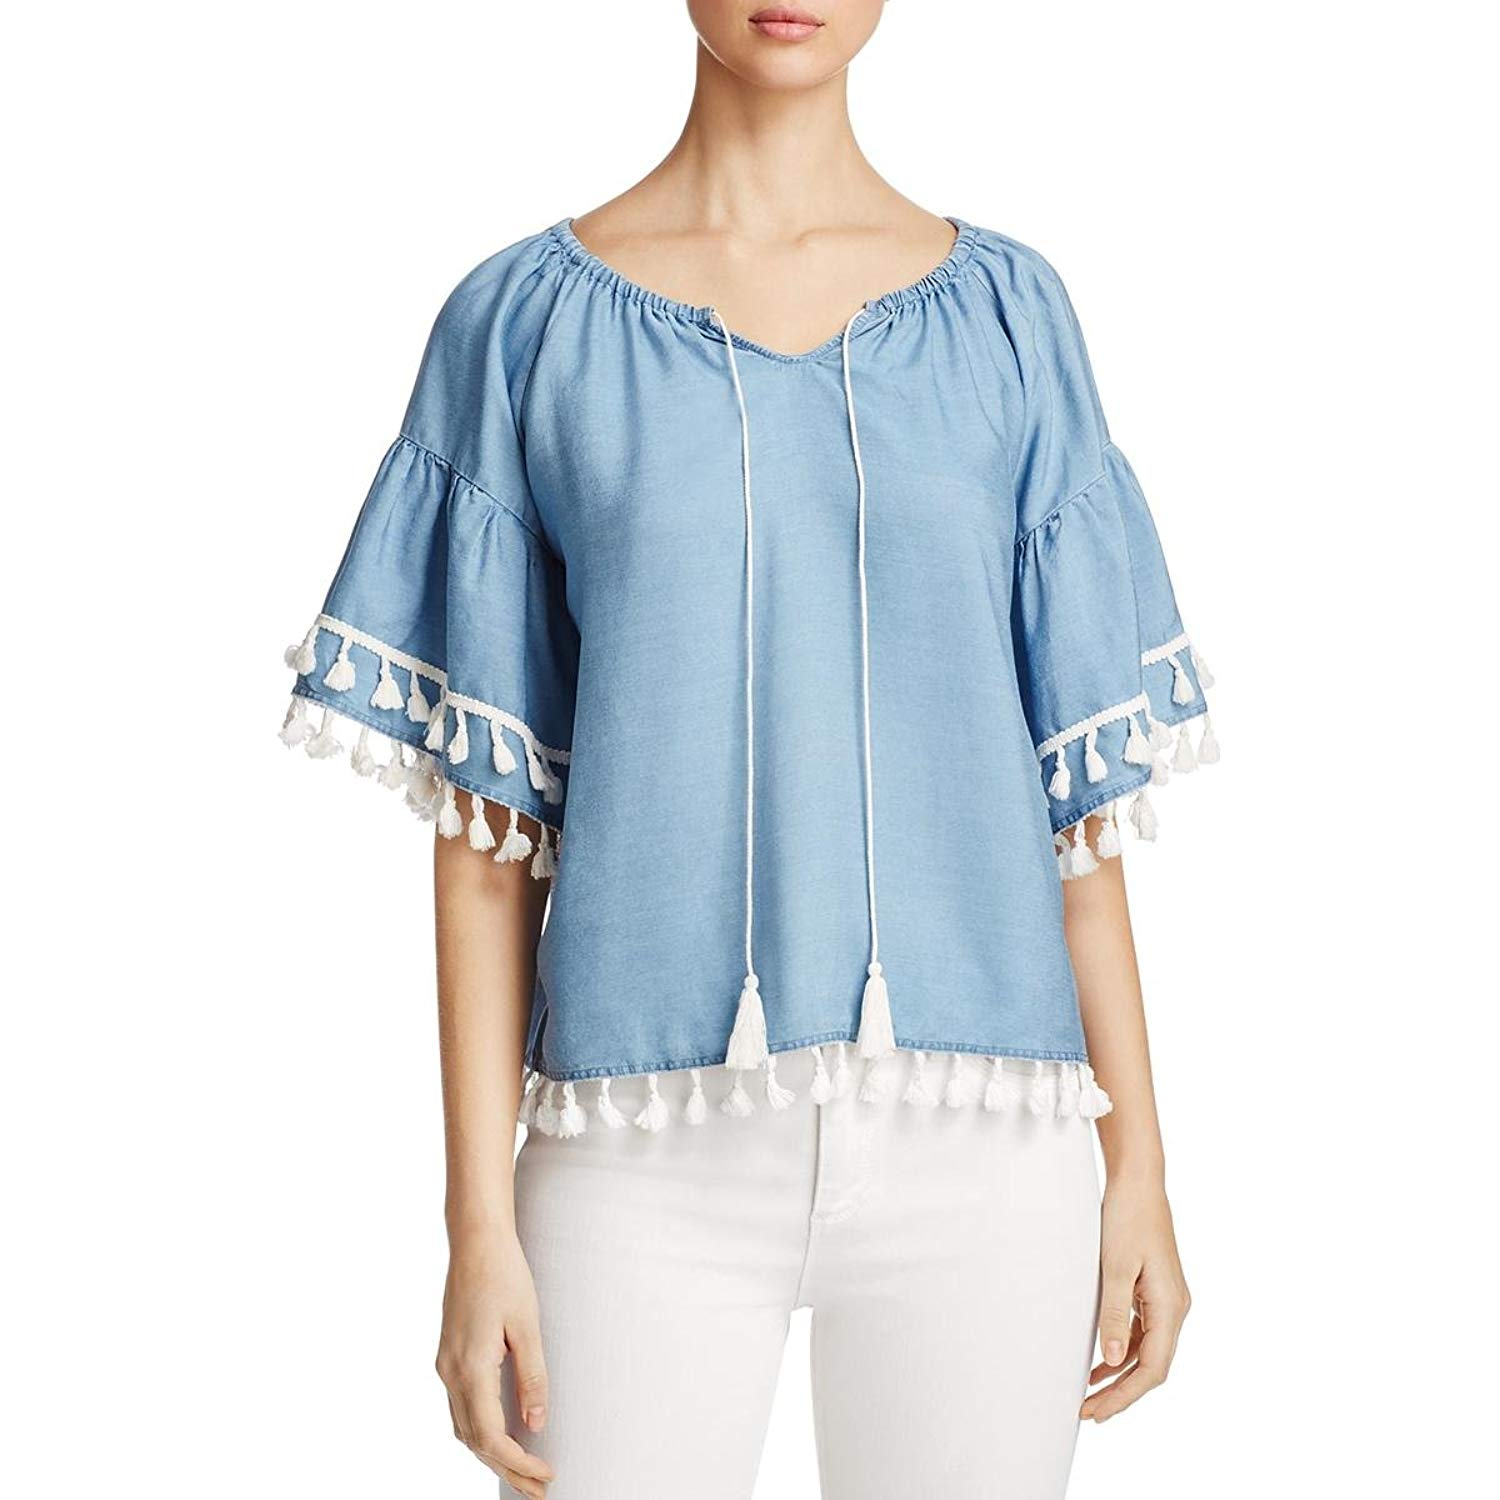 a123c5e383 Get Quotations · Bagatelle Womens Chambray Peasant Tunic Top